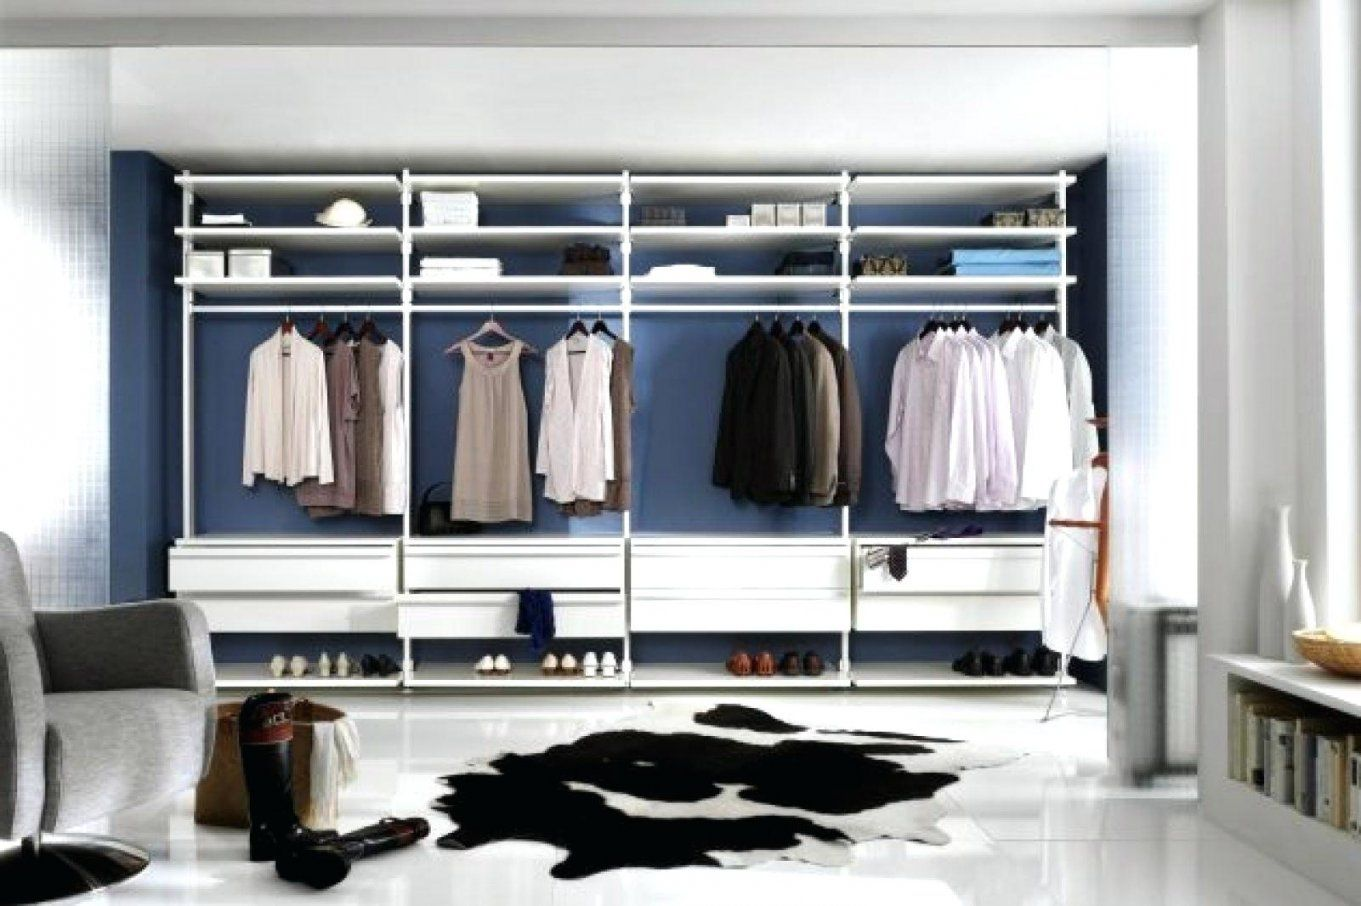 regale begehbarer kleiderschrank regalsysteme veneto. Black Bedroom Furniture Sets. Home Design Ideas